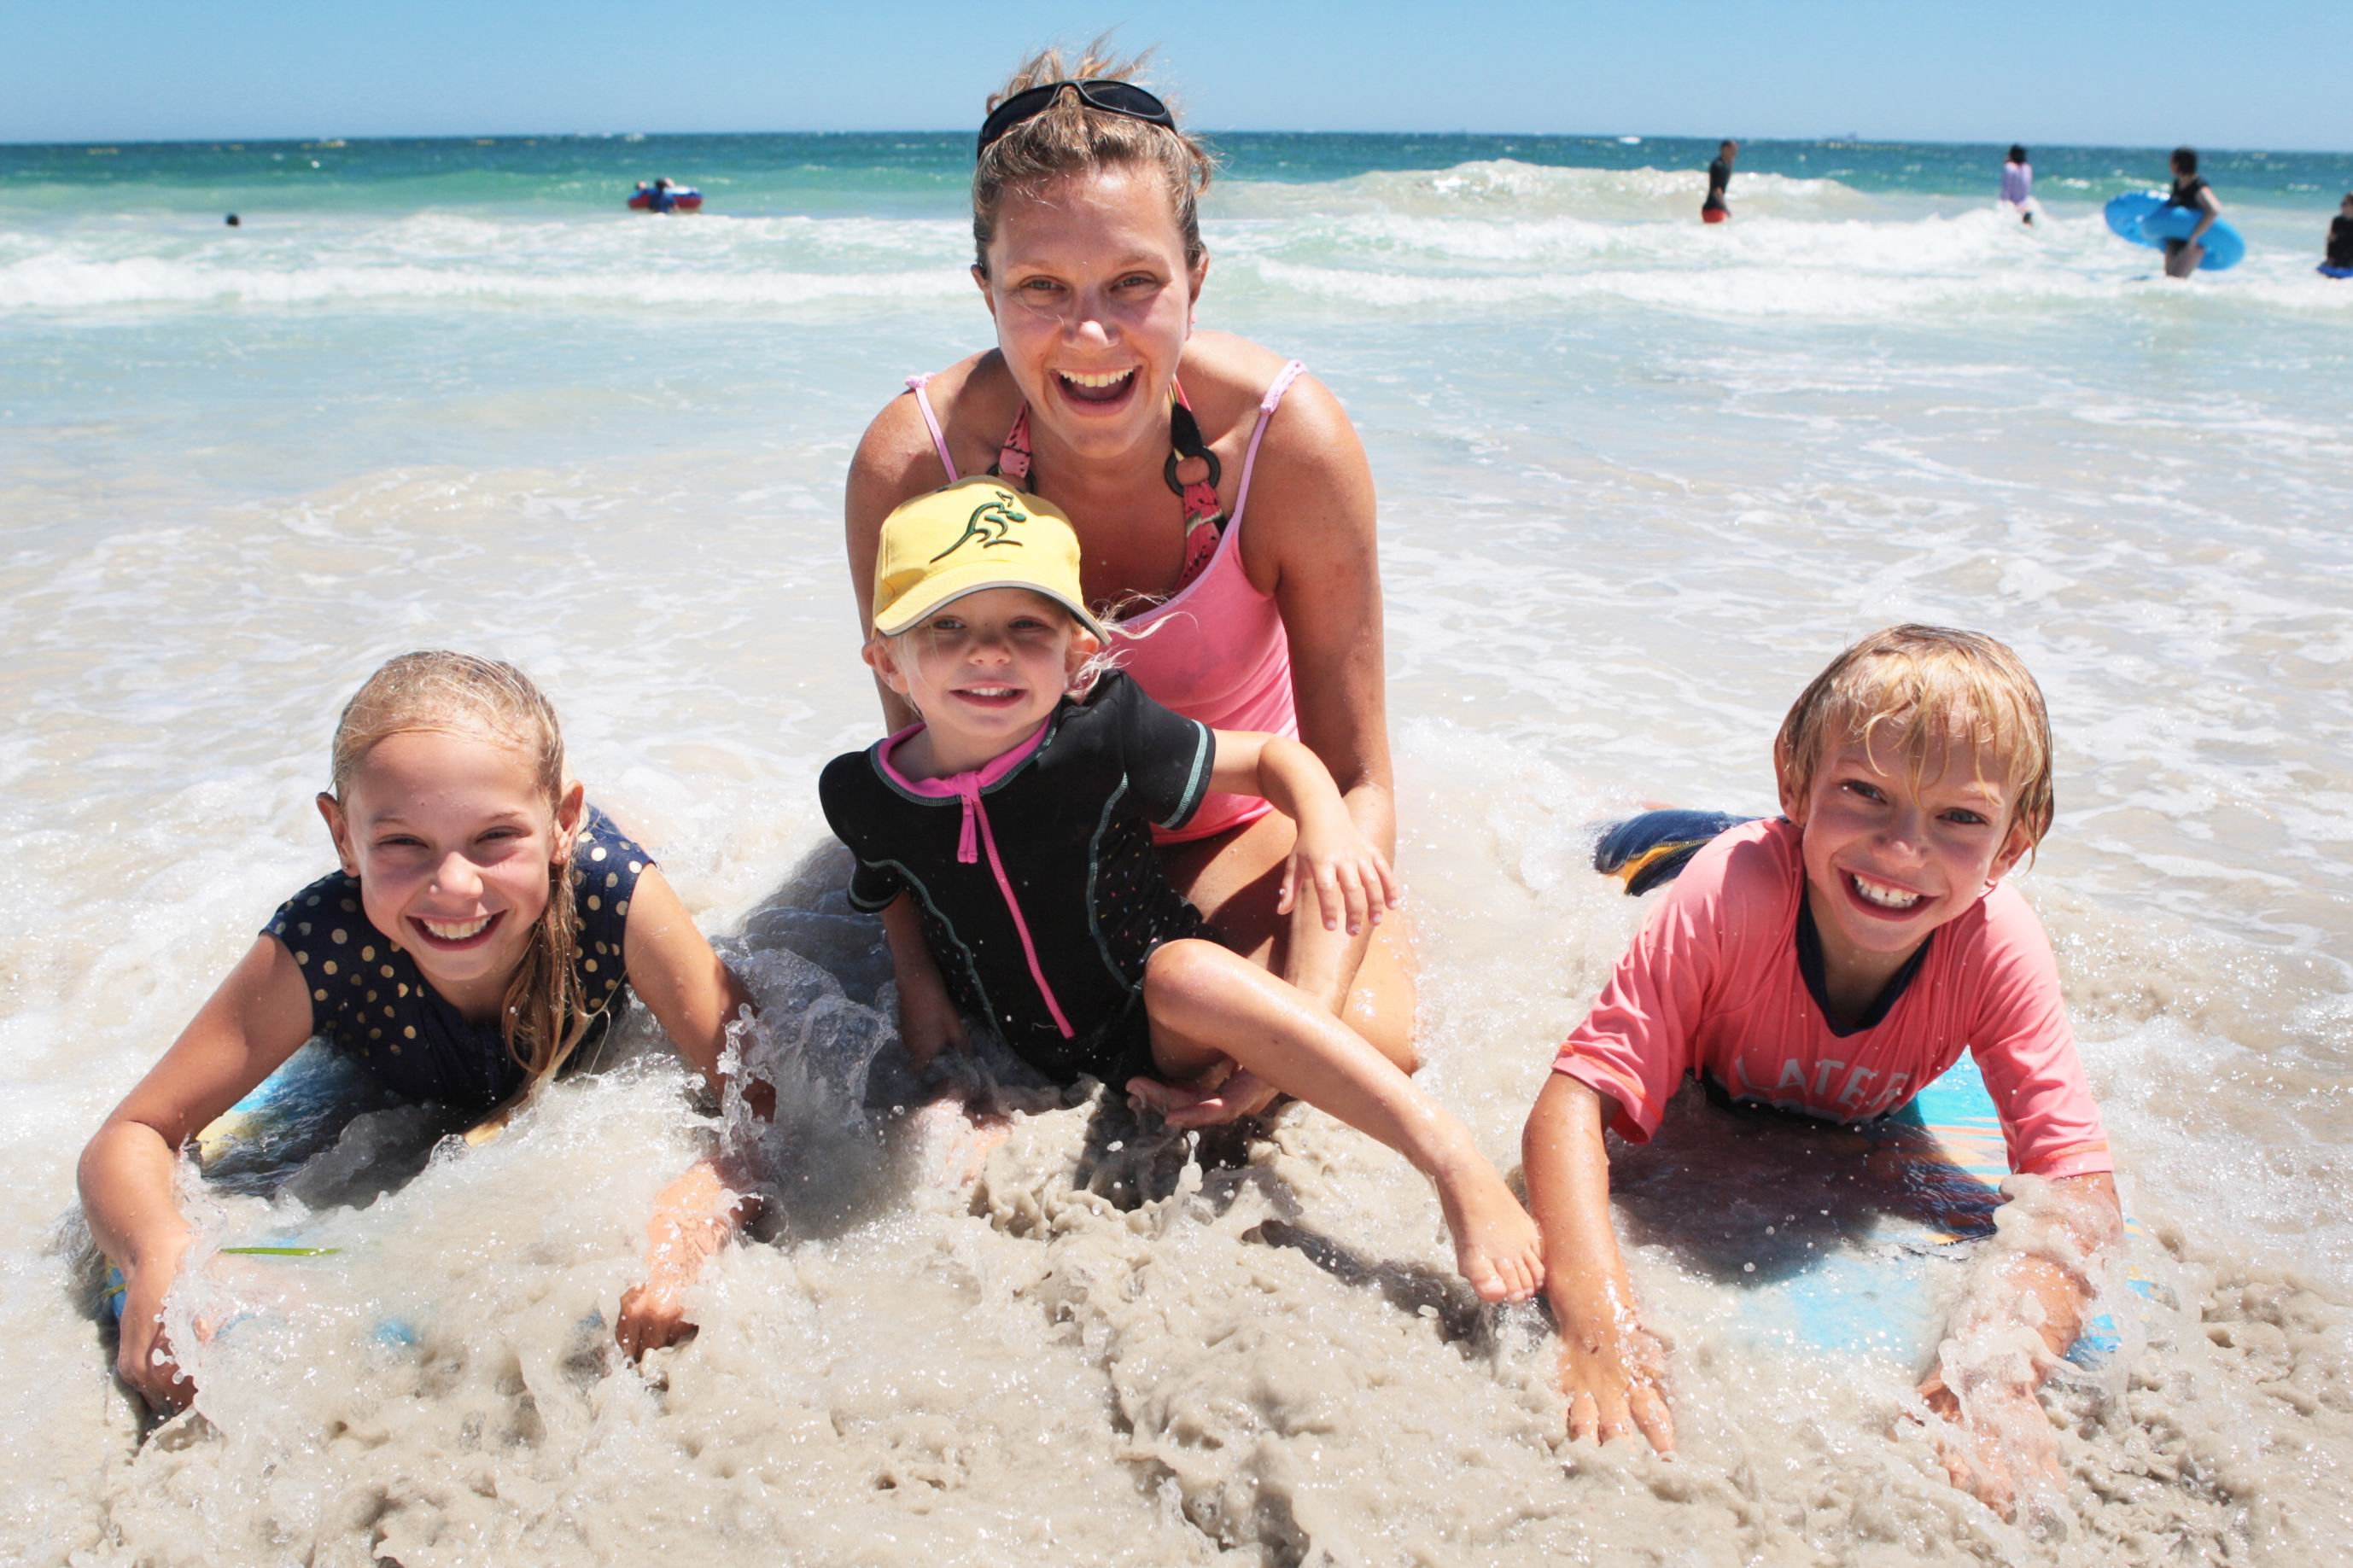 Louise Skipworth with her children Olivier, Millie and Harry, enjoying the surf at Sorrento's shark-protected beach. Picture: Bruce Hunt d463985